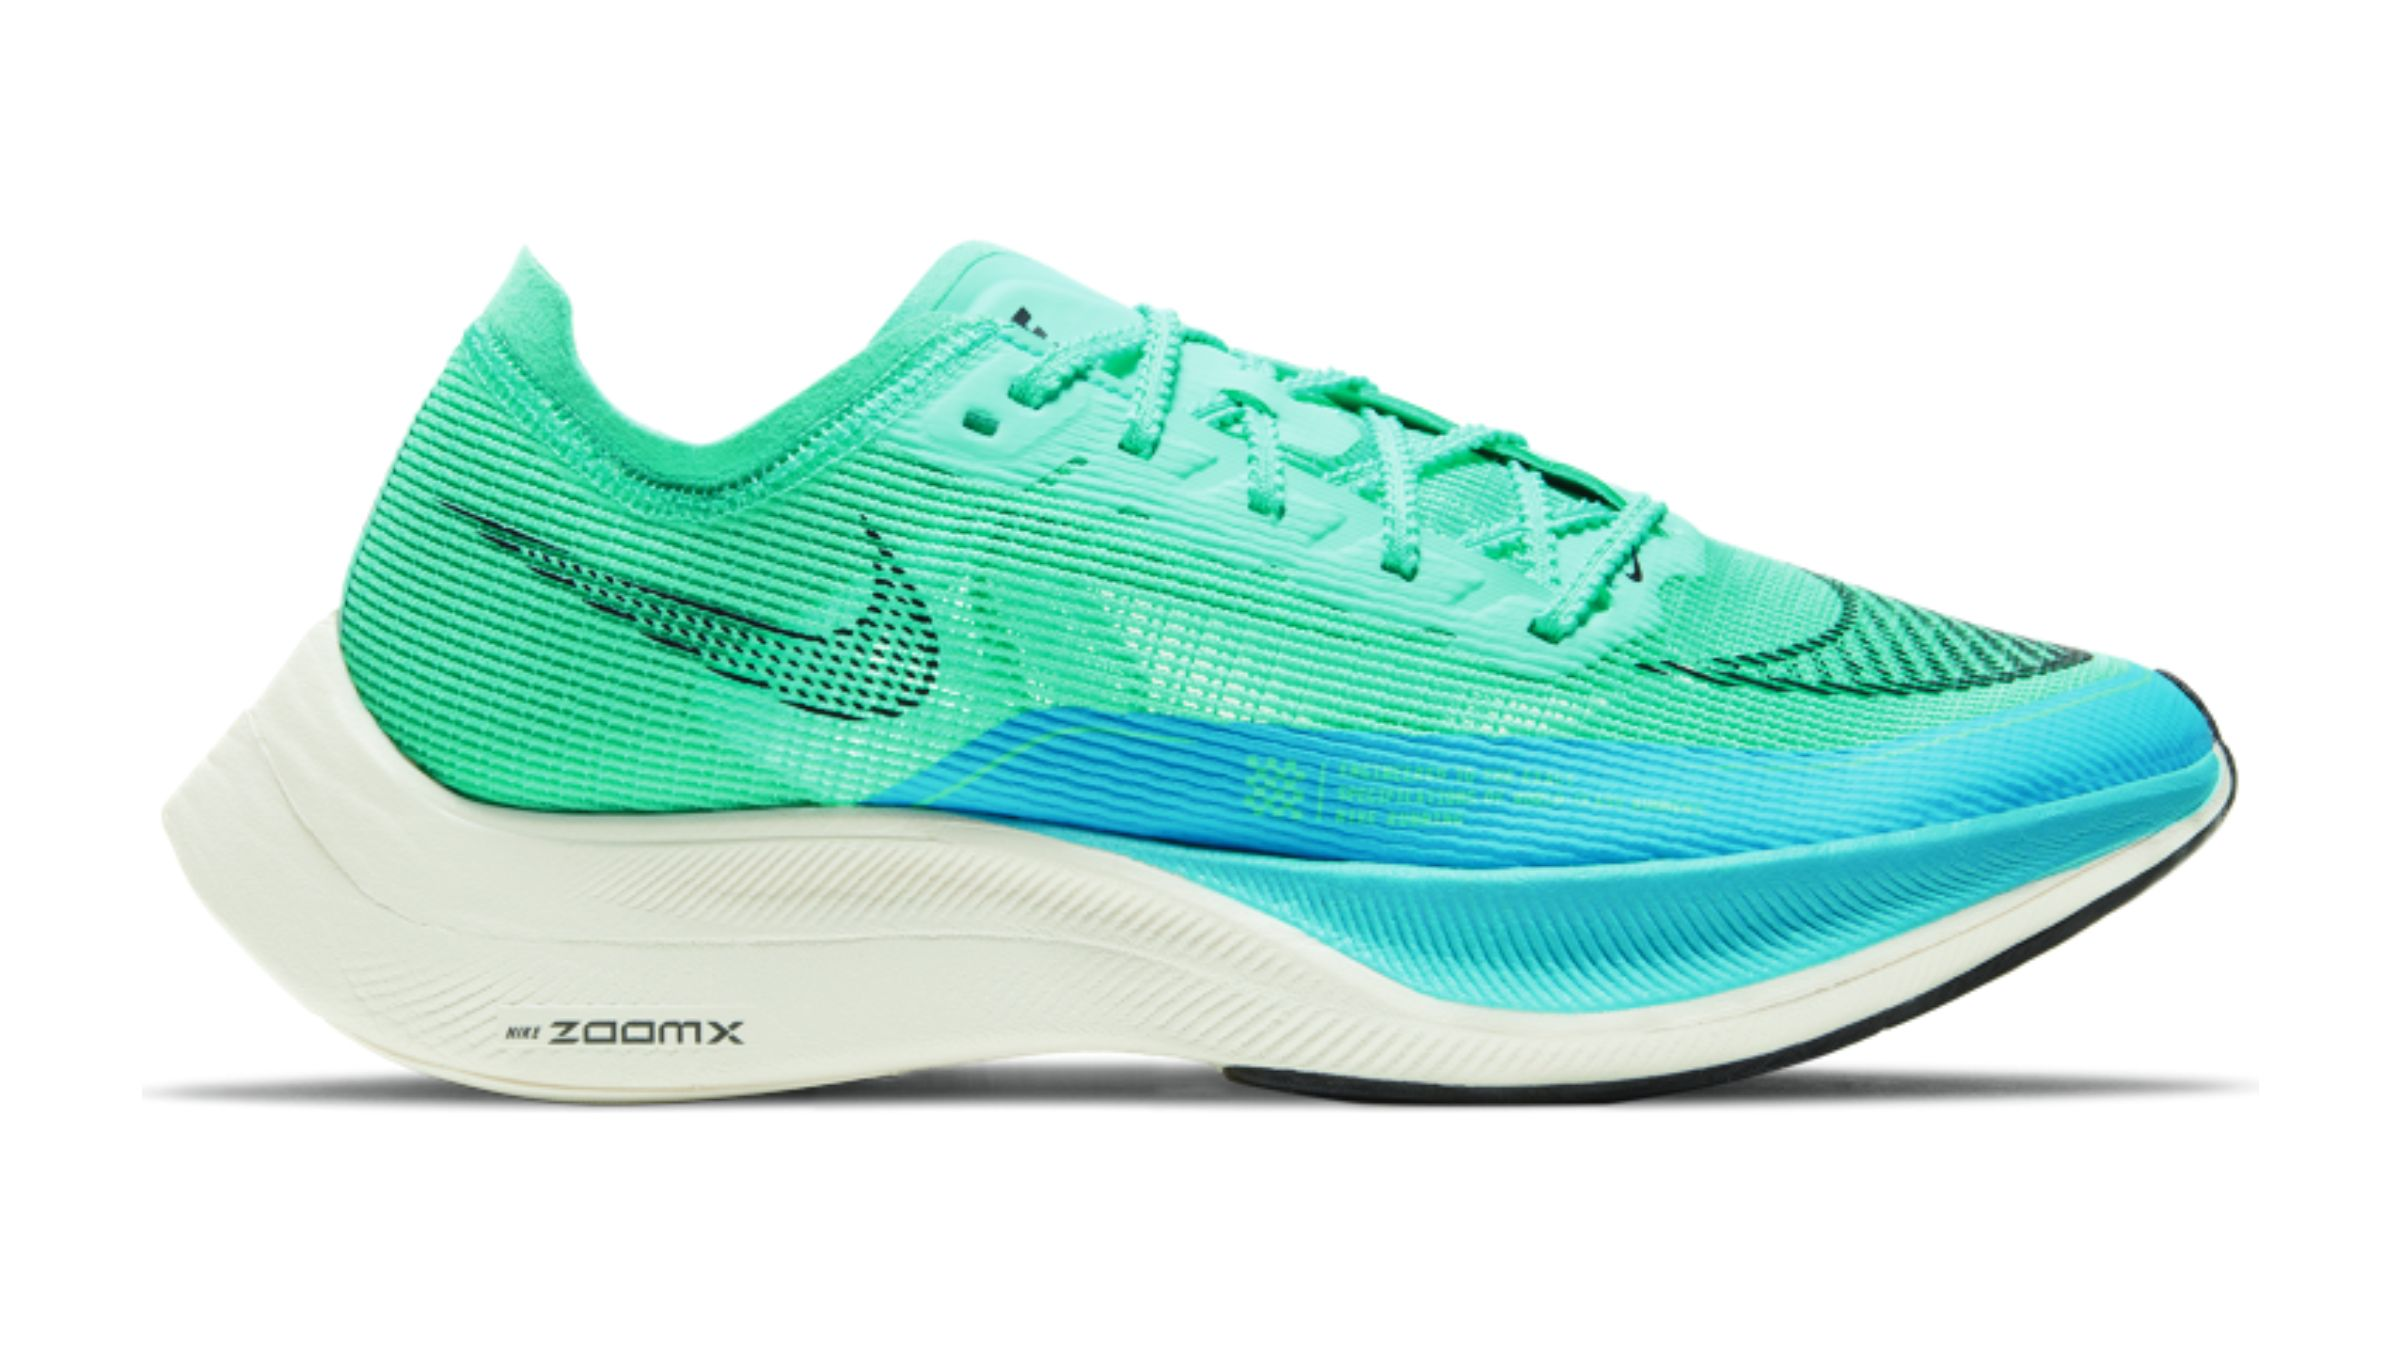 Light green and blue Nike Vaporfly NEXT% 2 running shoe